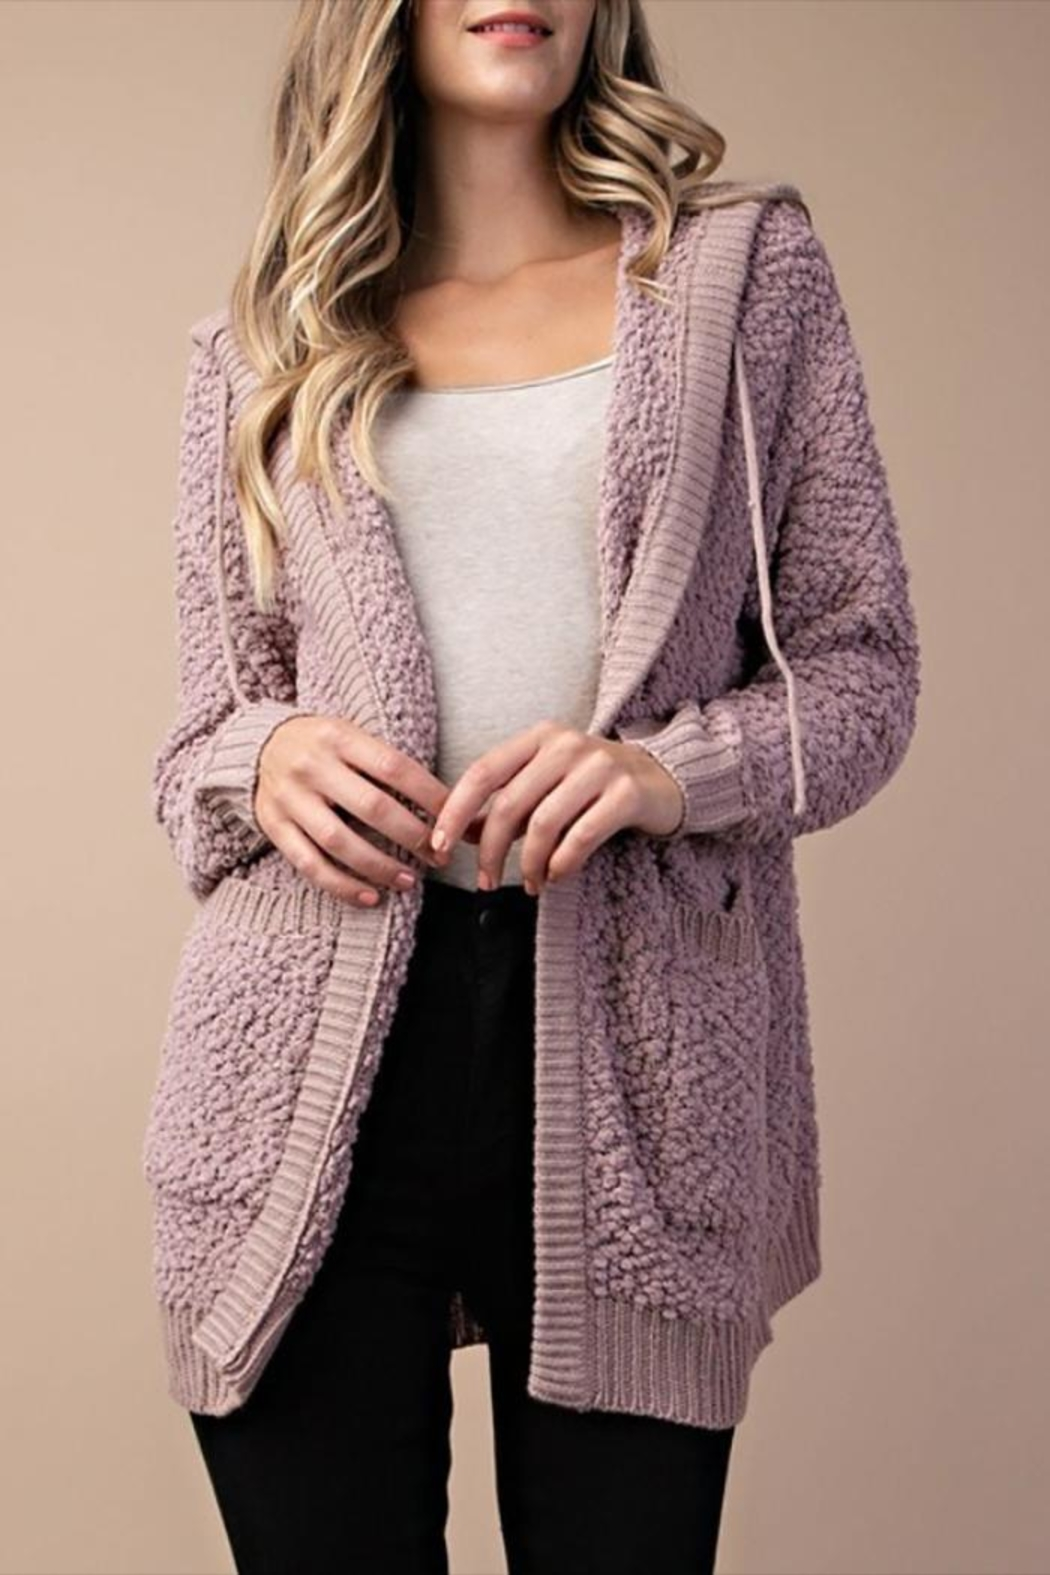 7a0474c9910 style Popcorn Hooded Cardigan from Mississippi by Lucky Liles ...